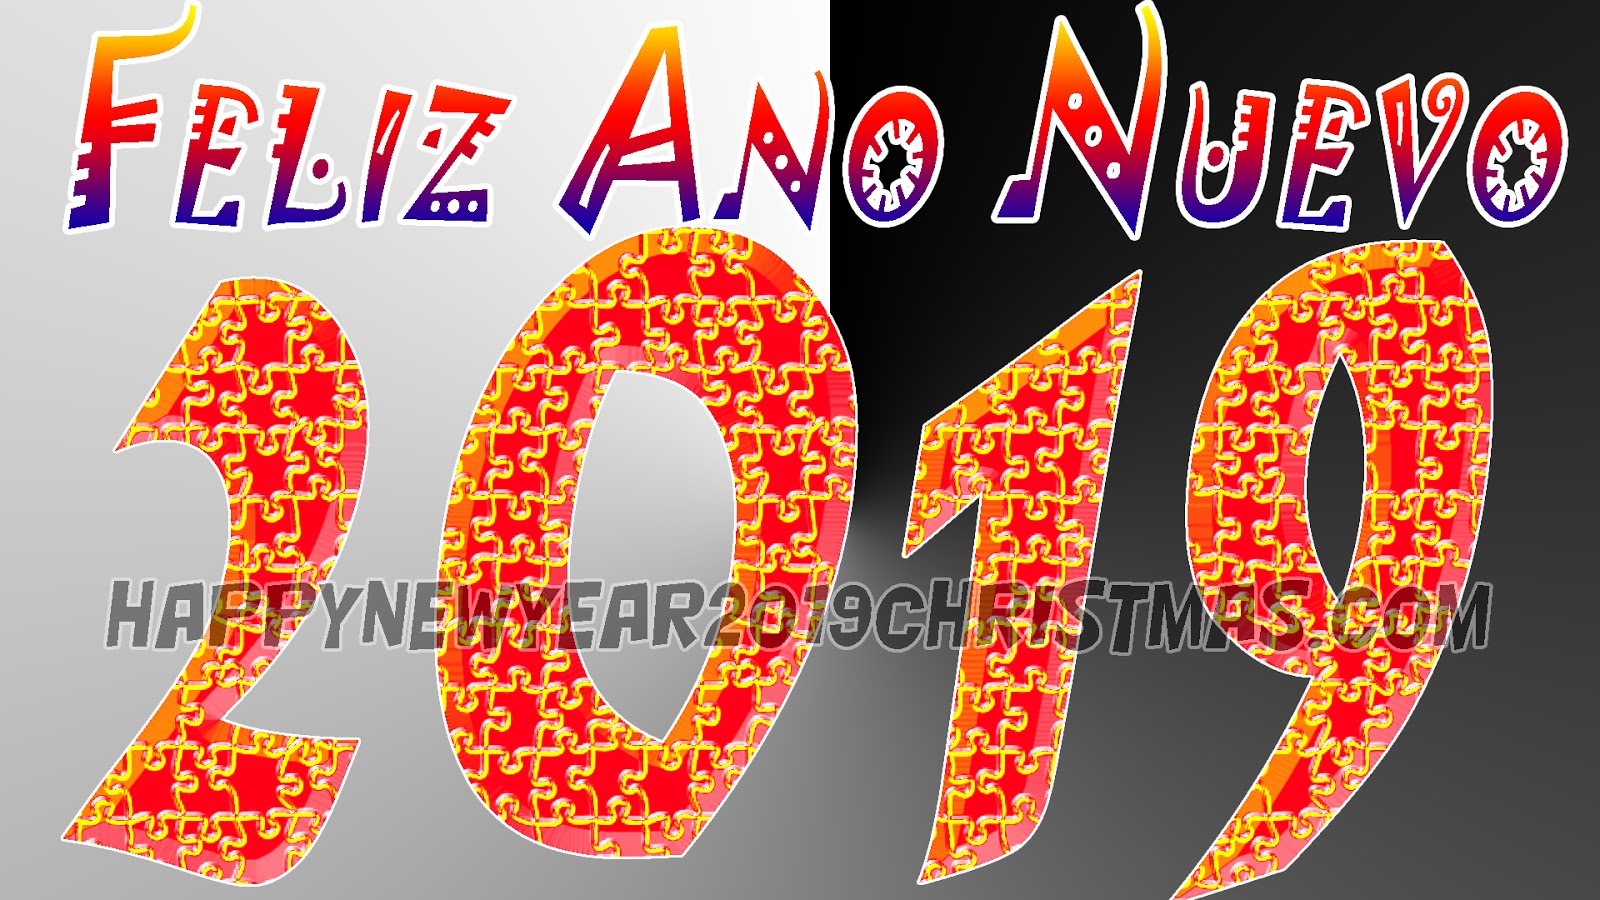 Happy New Year 2019 Wishes in Spanish | Happy New Year 2019 images ...